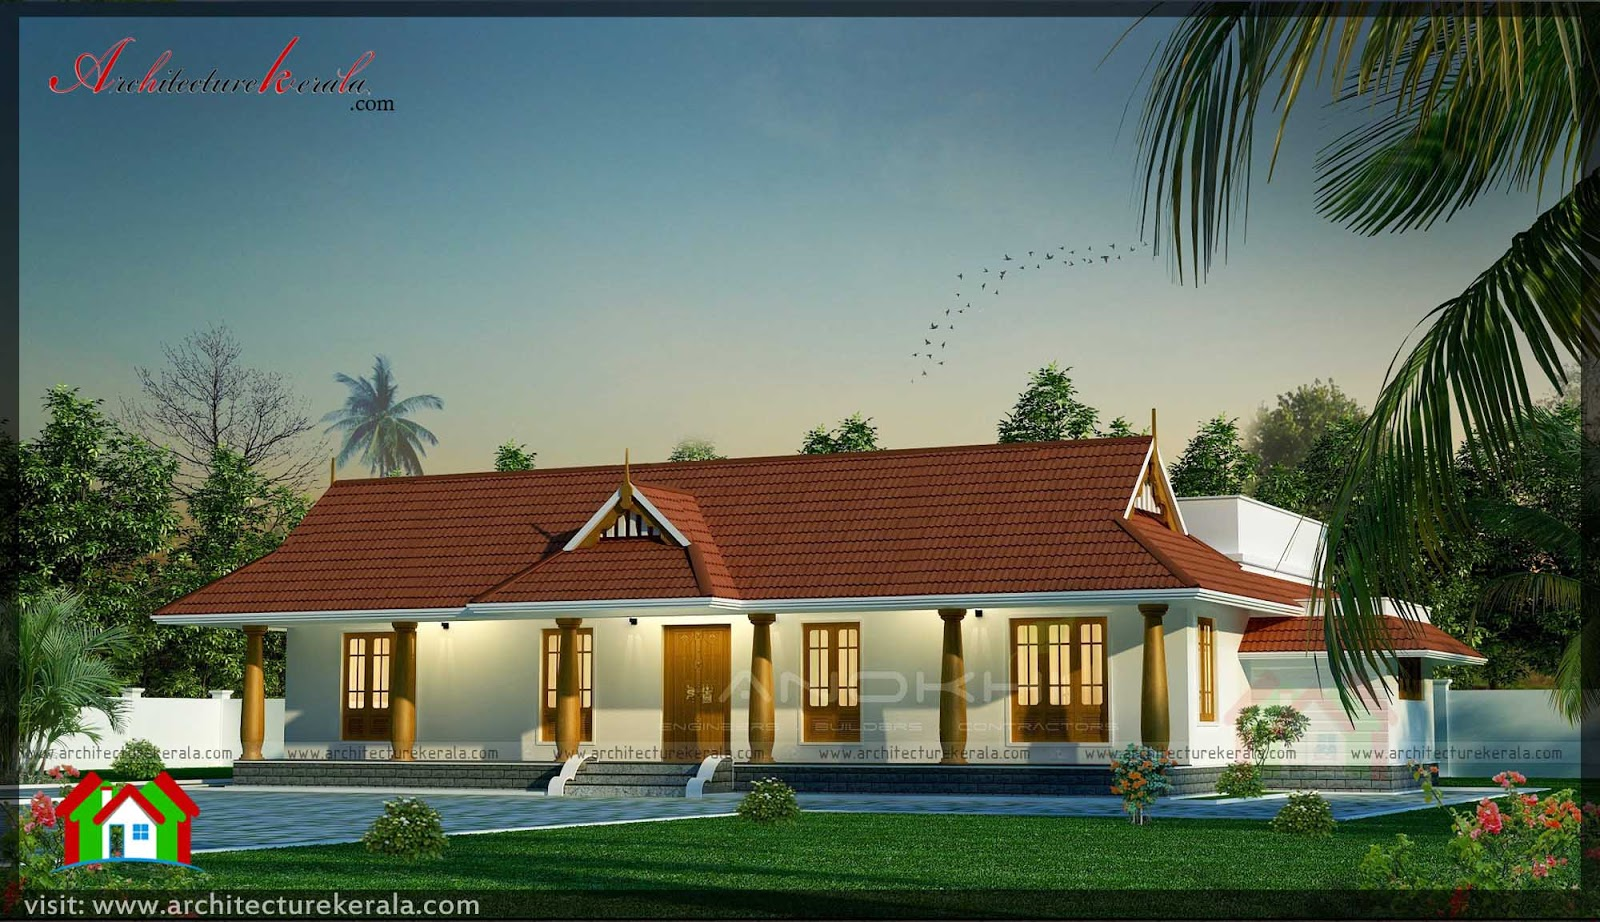 Kerala style house with nadumuttam architecture kerala for Kerala style home